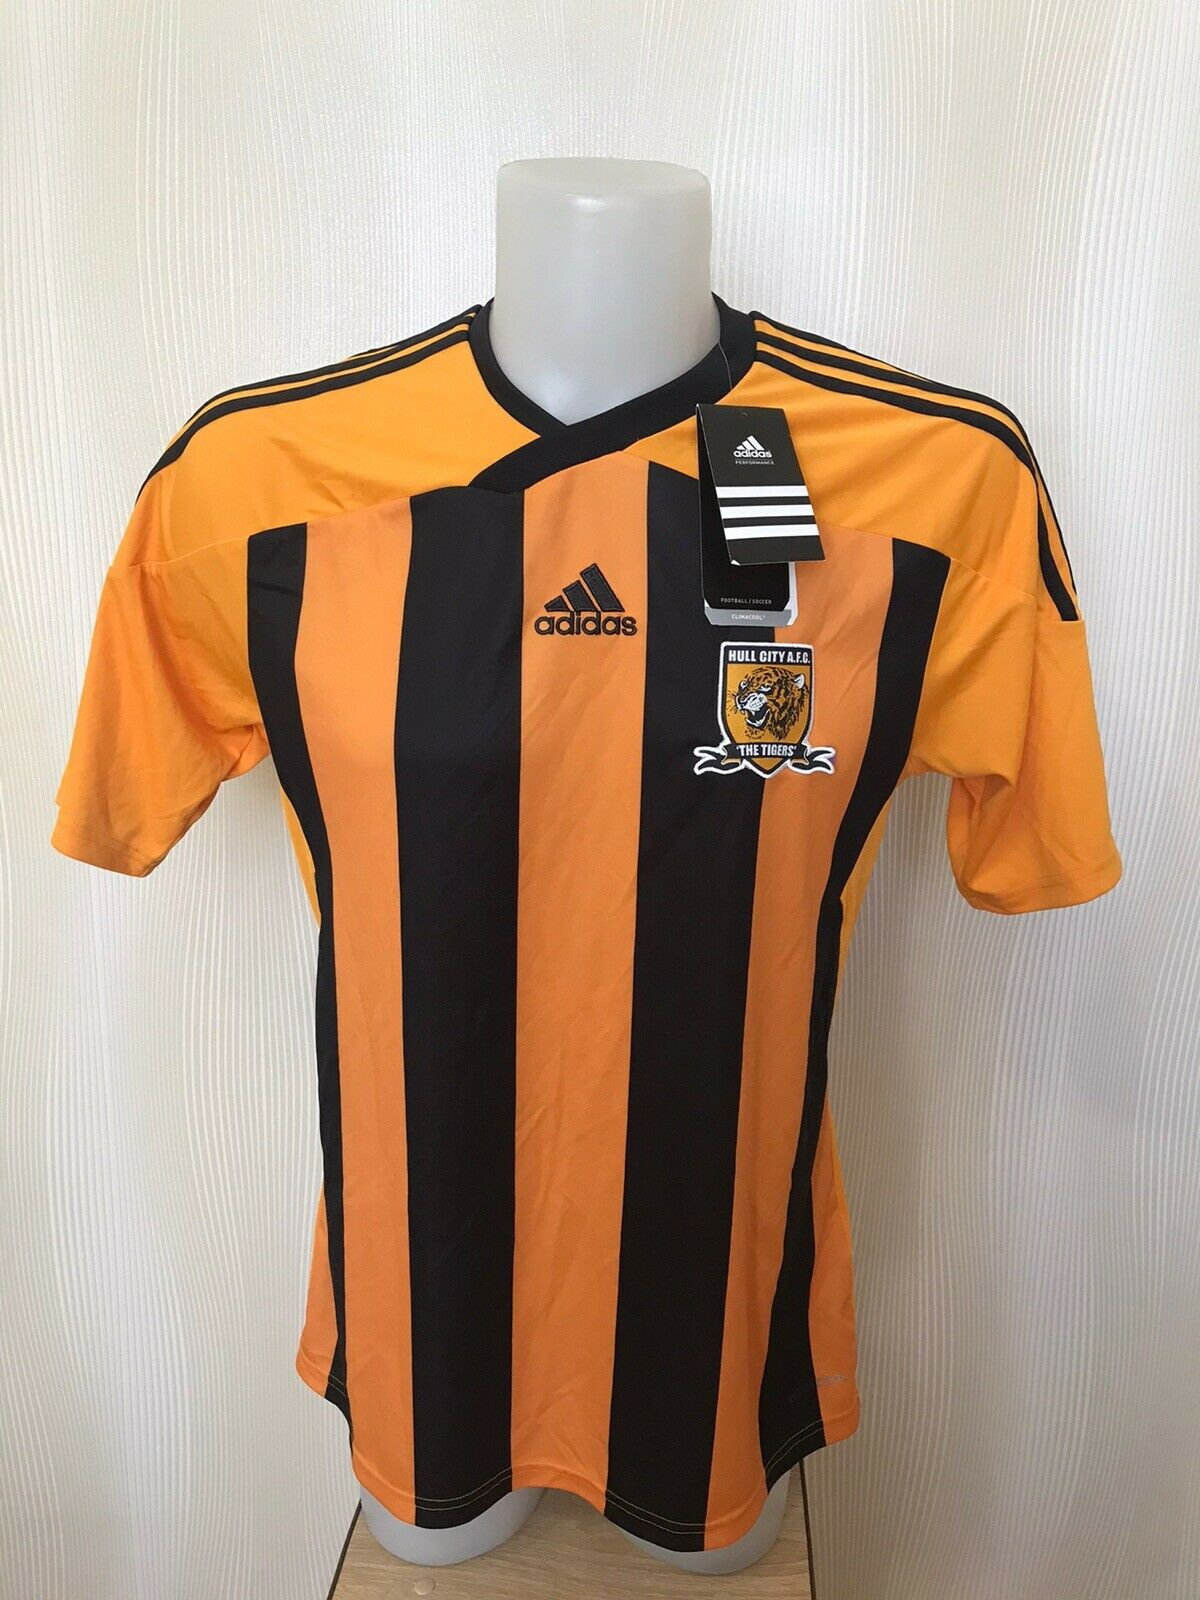 Hull City 2011/2012 Home Size L Adidas O56551 jersey